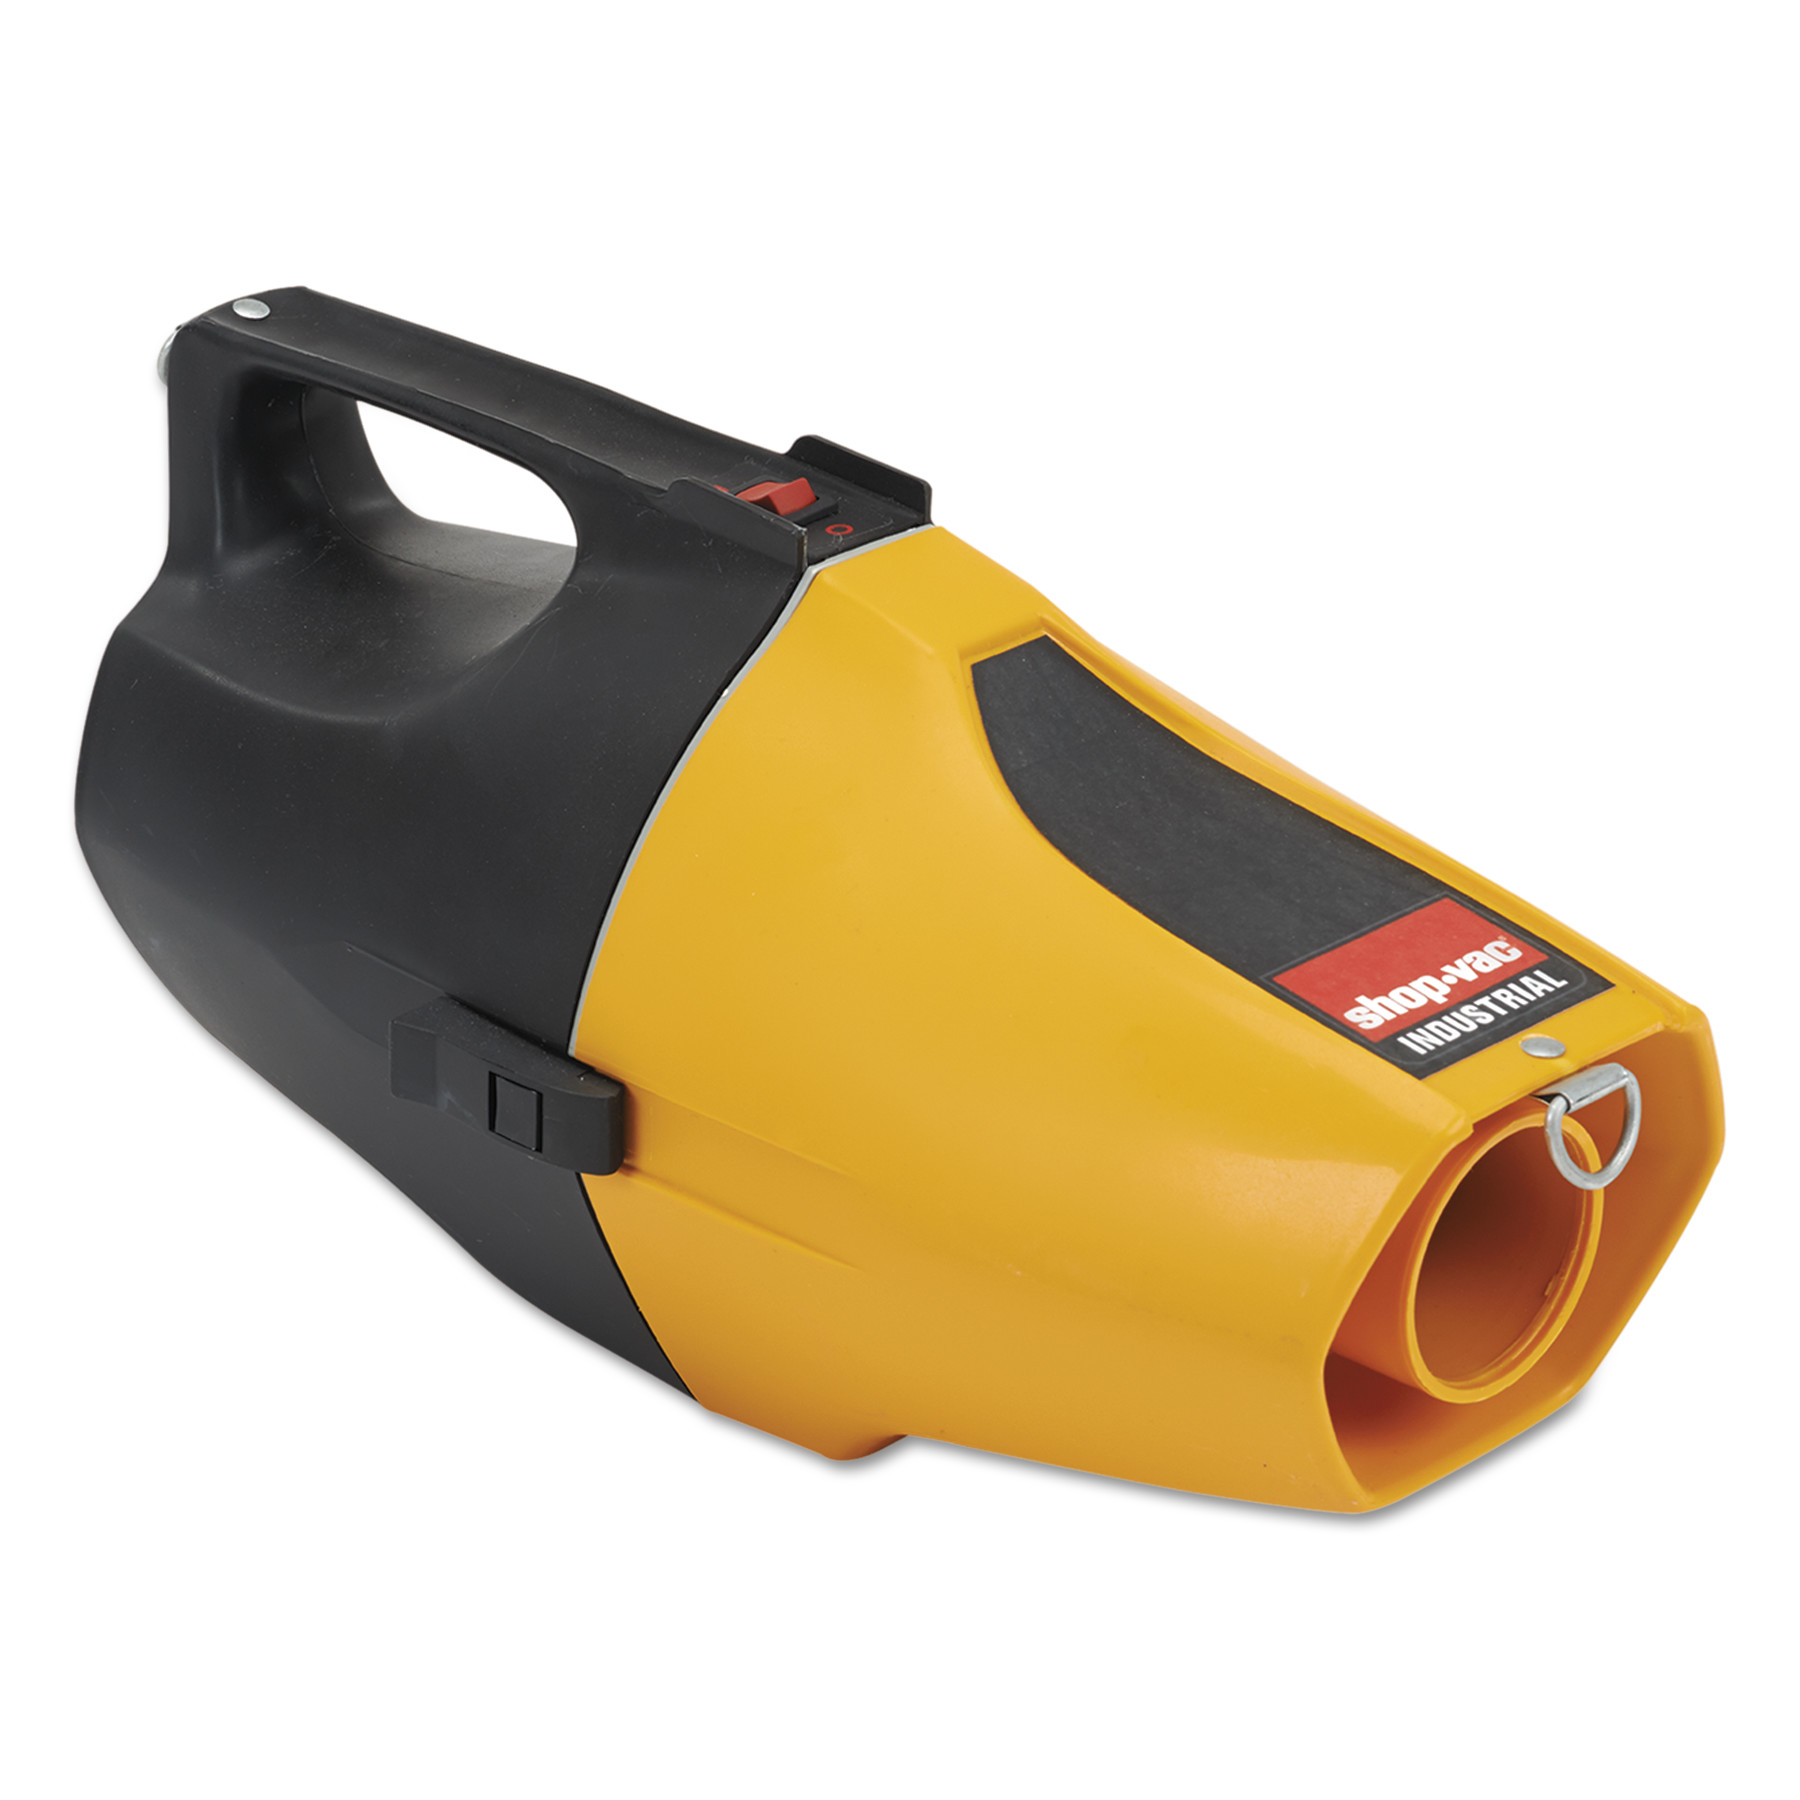 Shop-Vac Hippo Handheld Vac, 6.8 A, 9lb, Yellow/Black